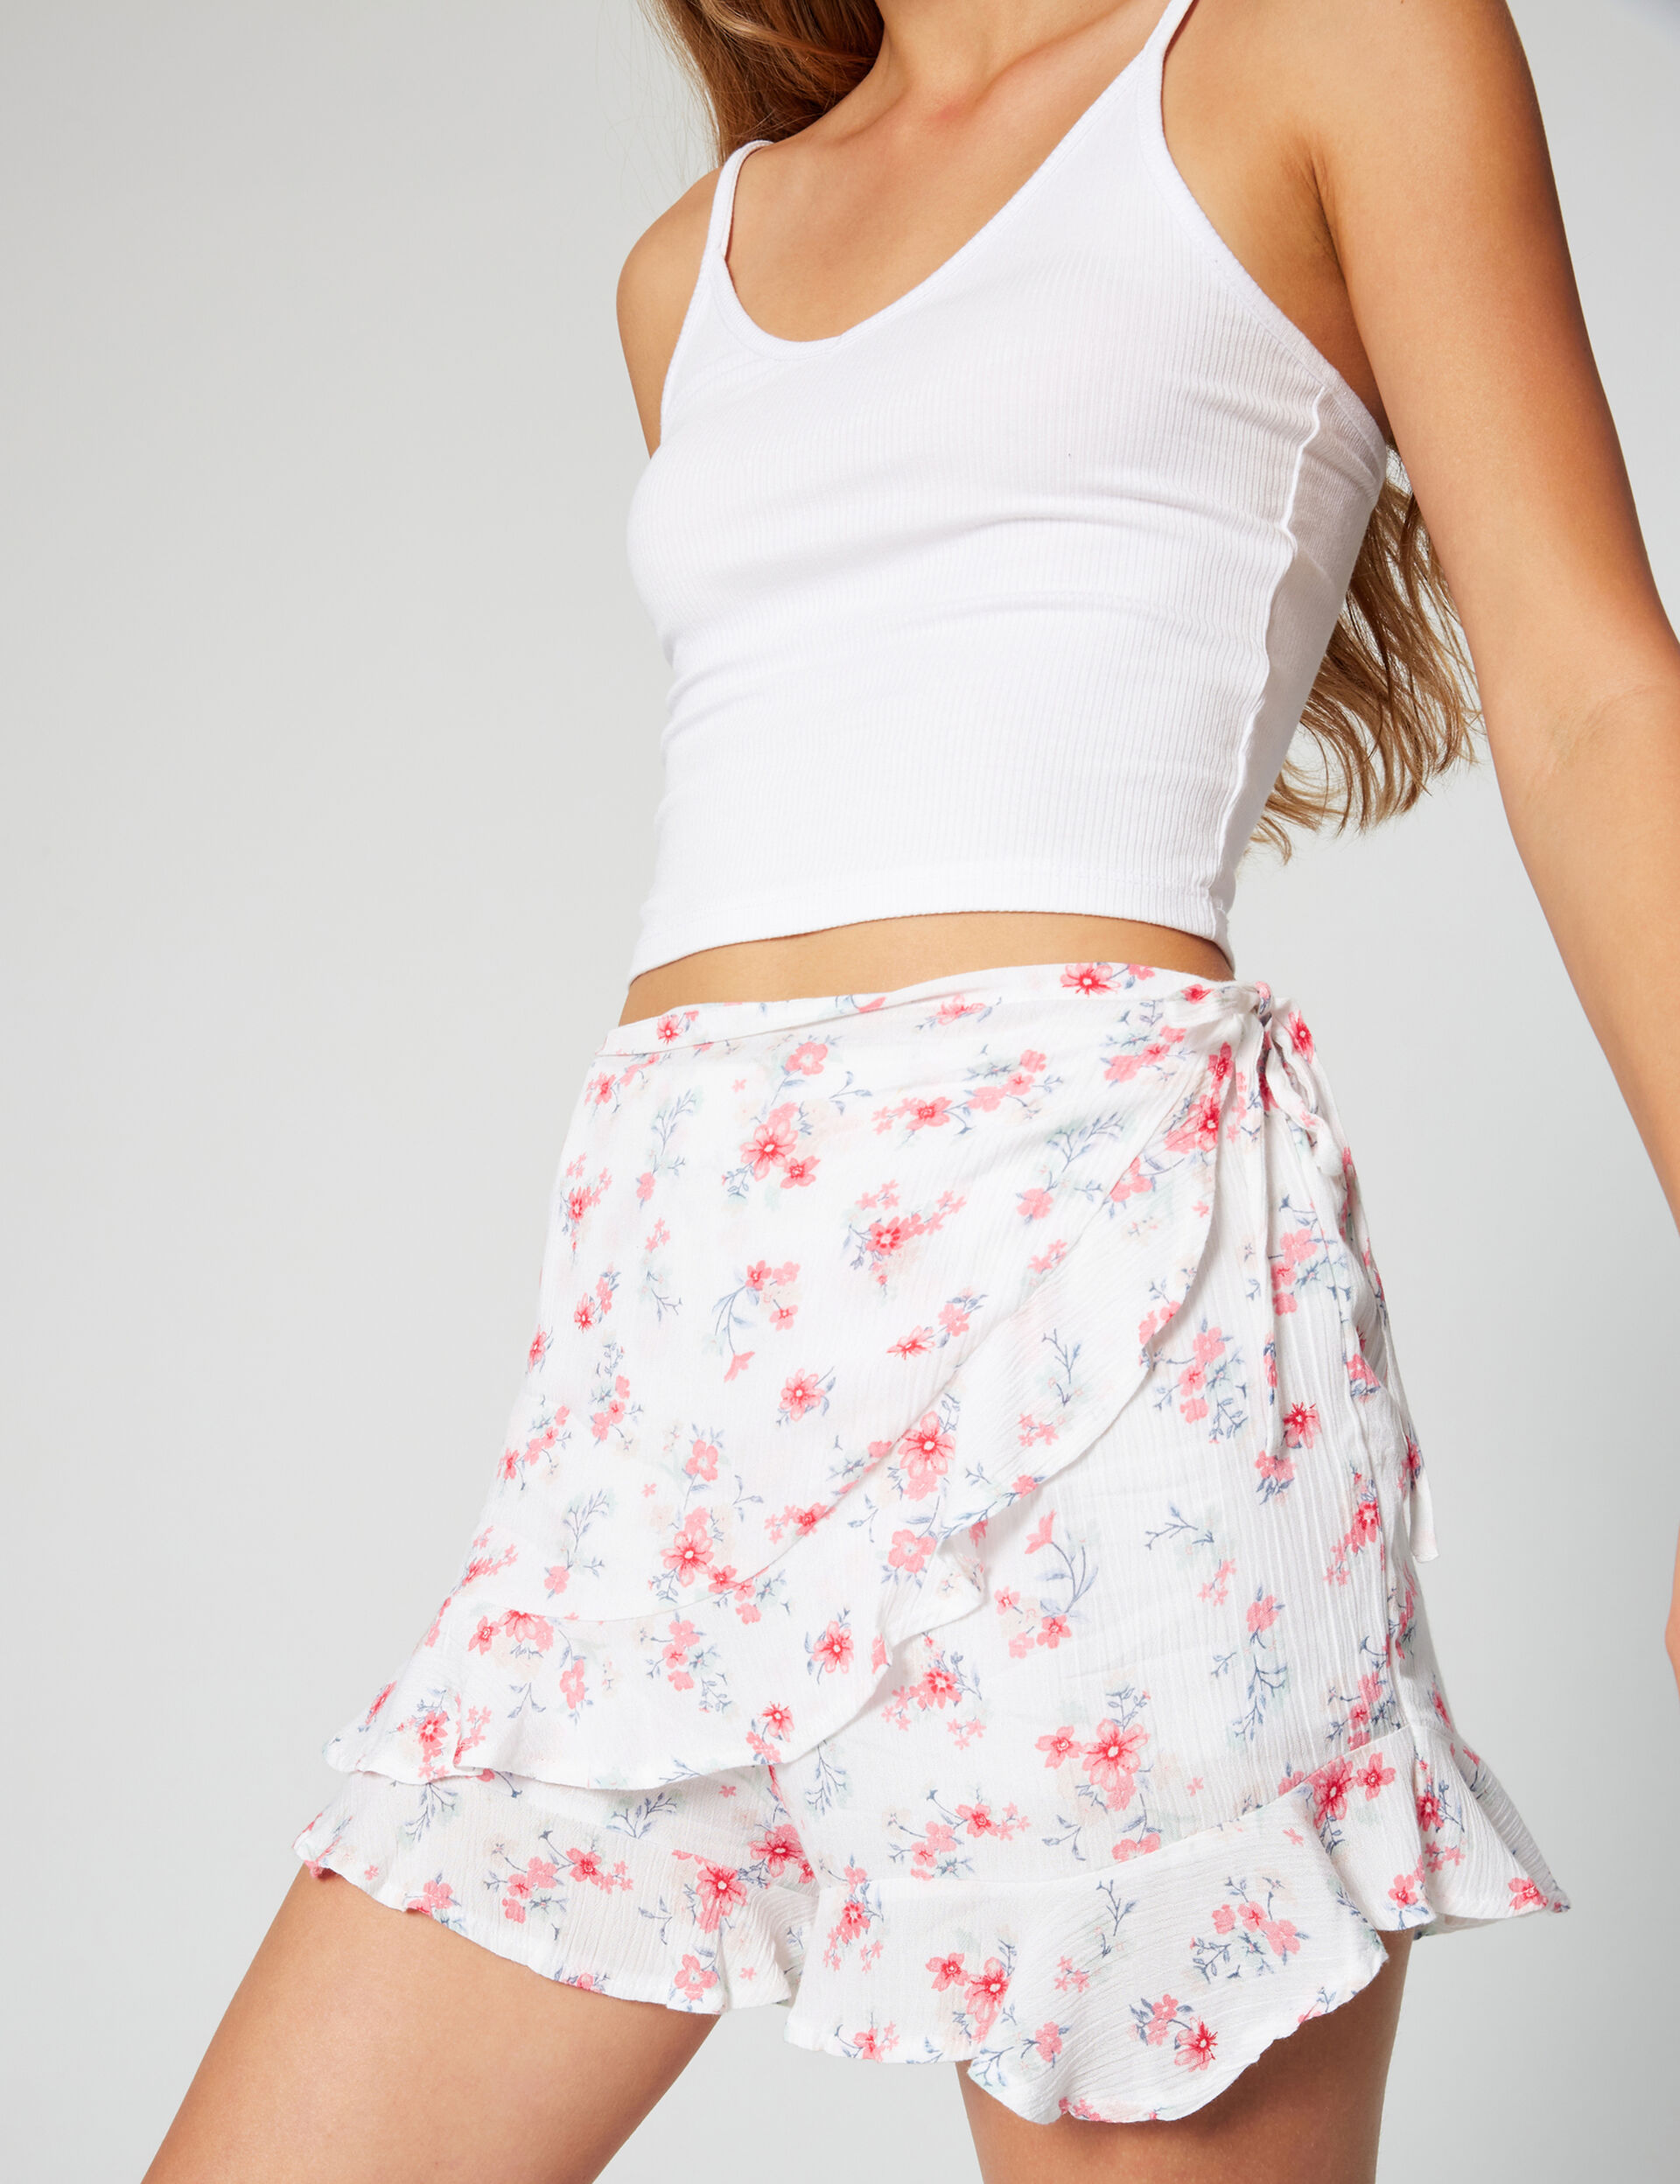 Printed shorts with frills